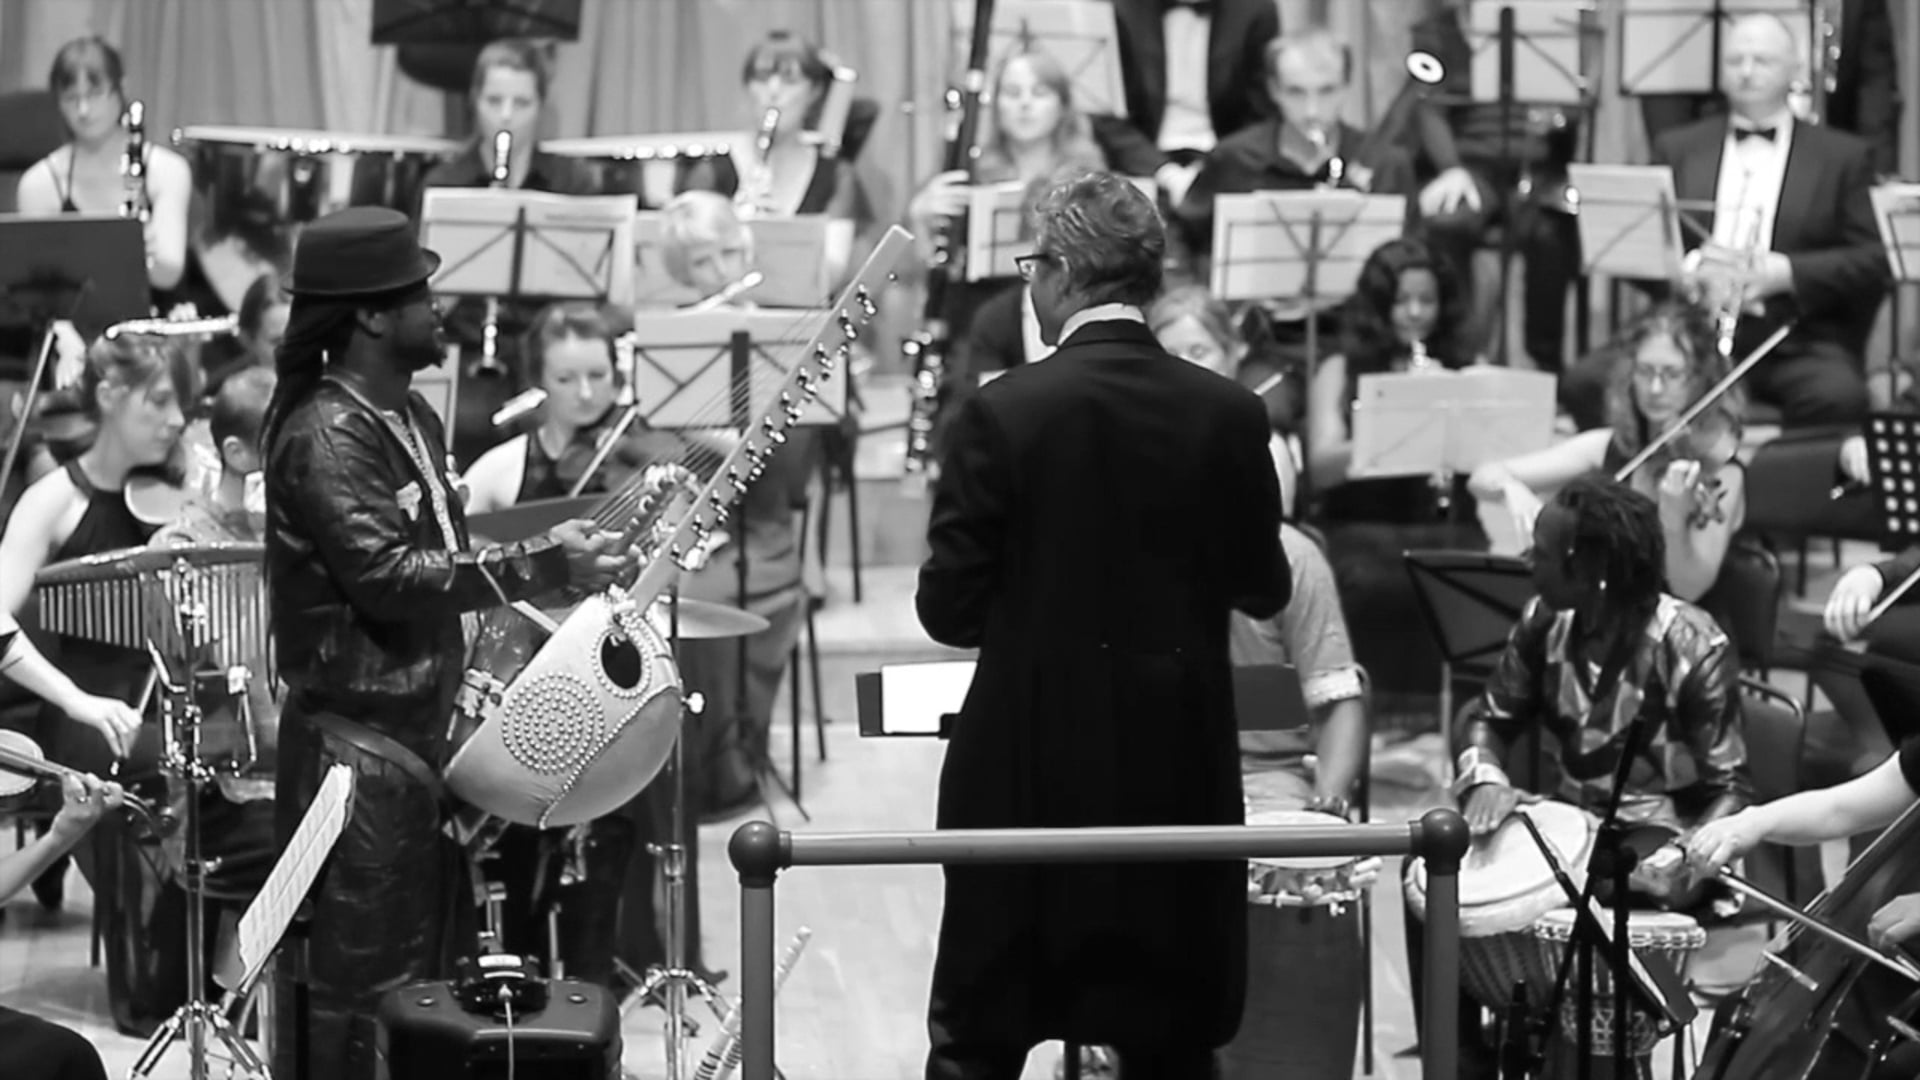 Excerpt from Concerto for Kora and Orchestra (High Sheriff Concert 2016)